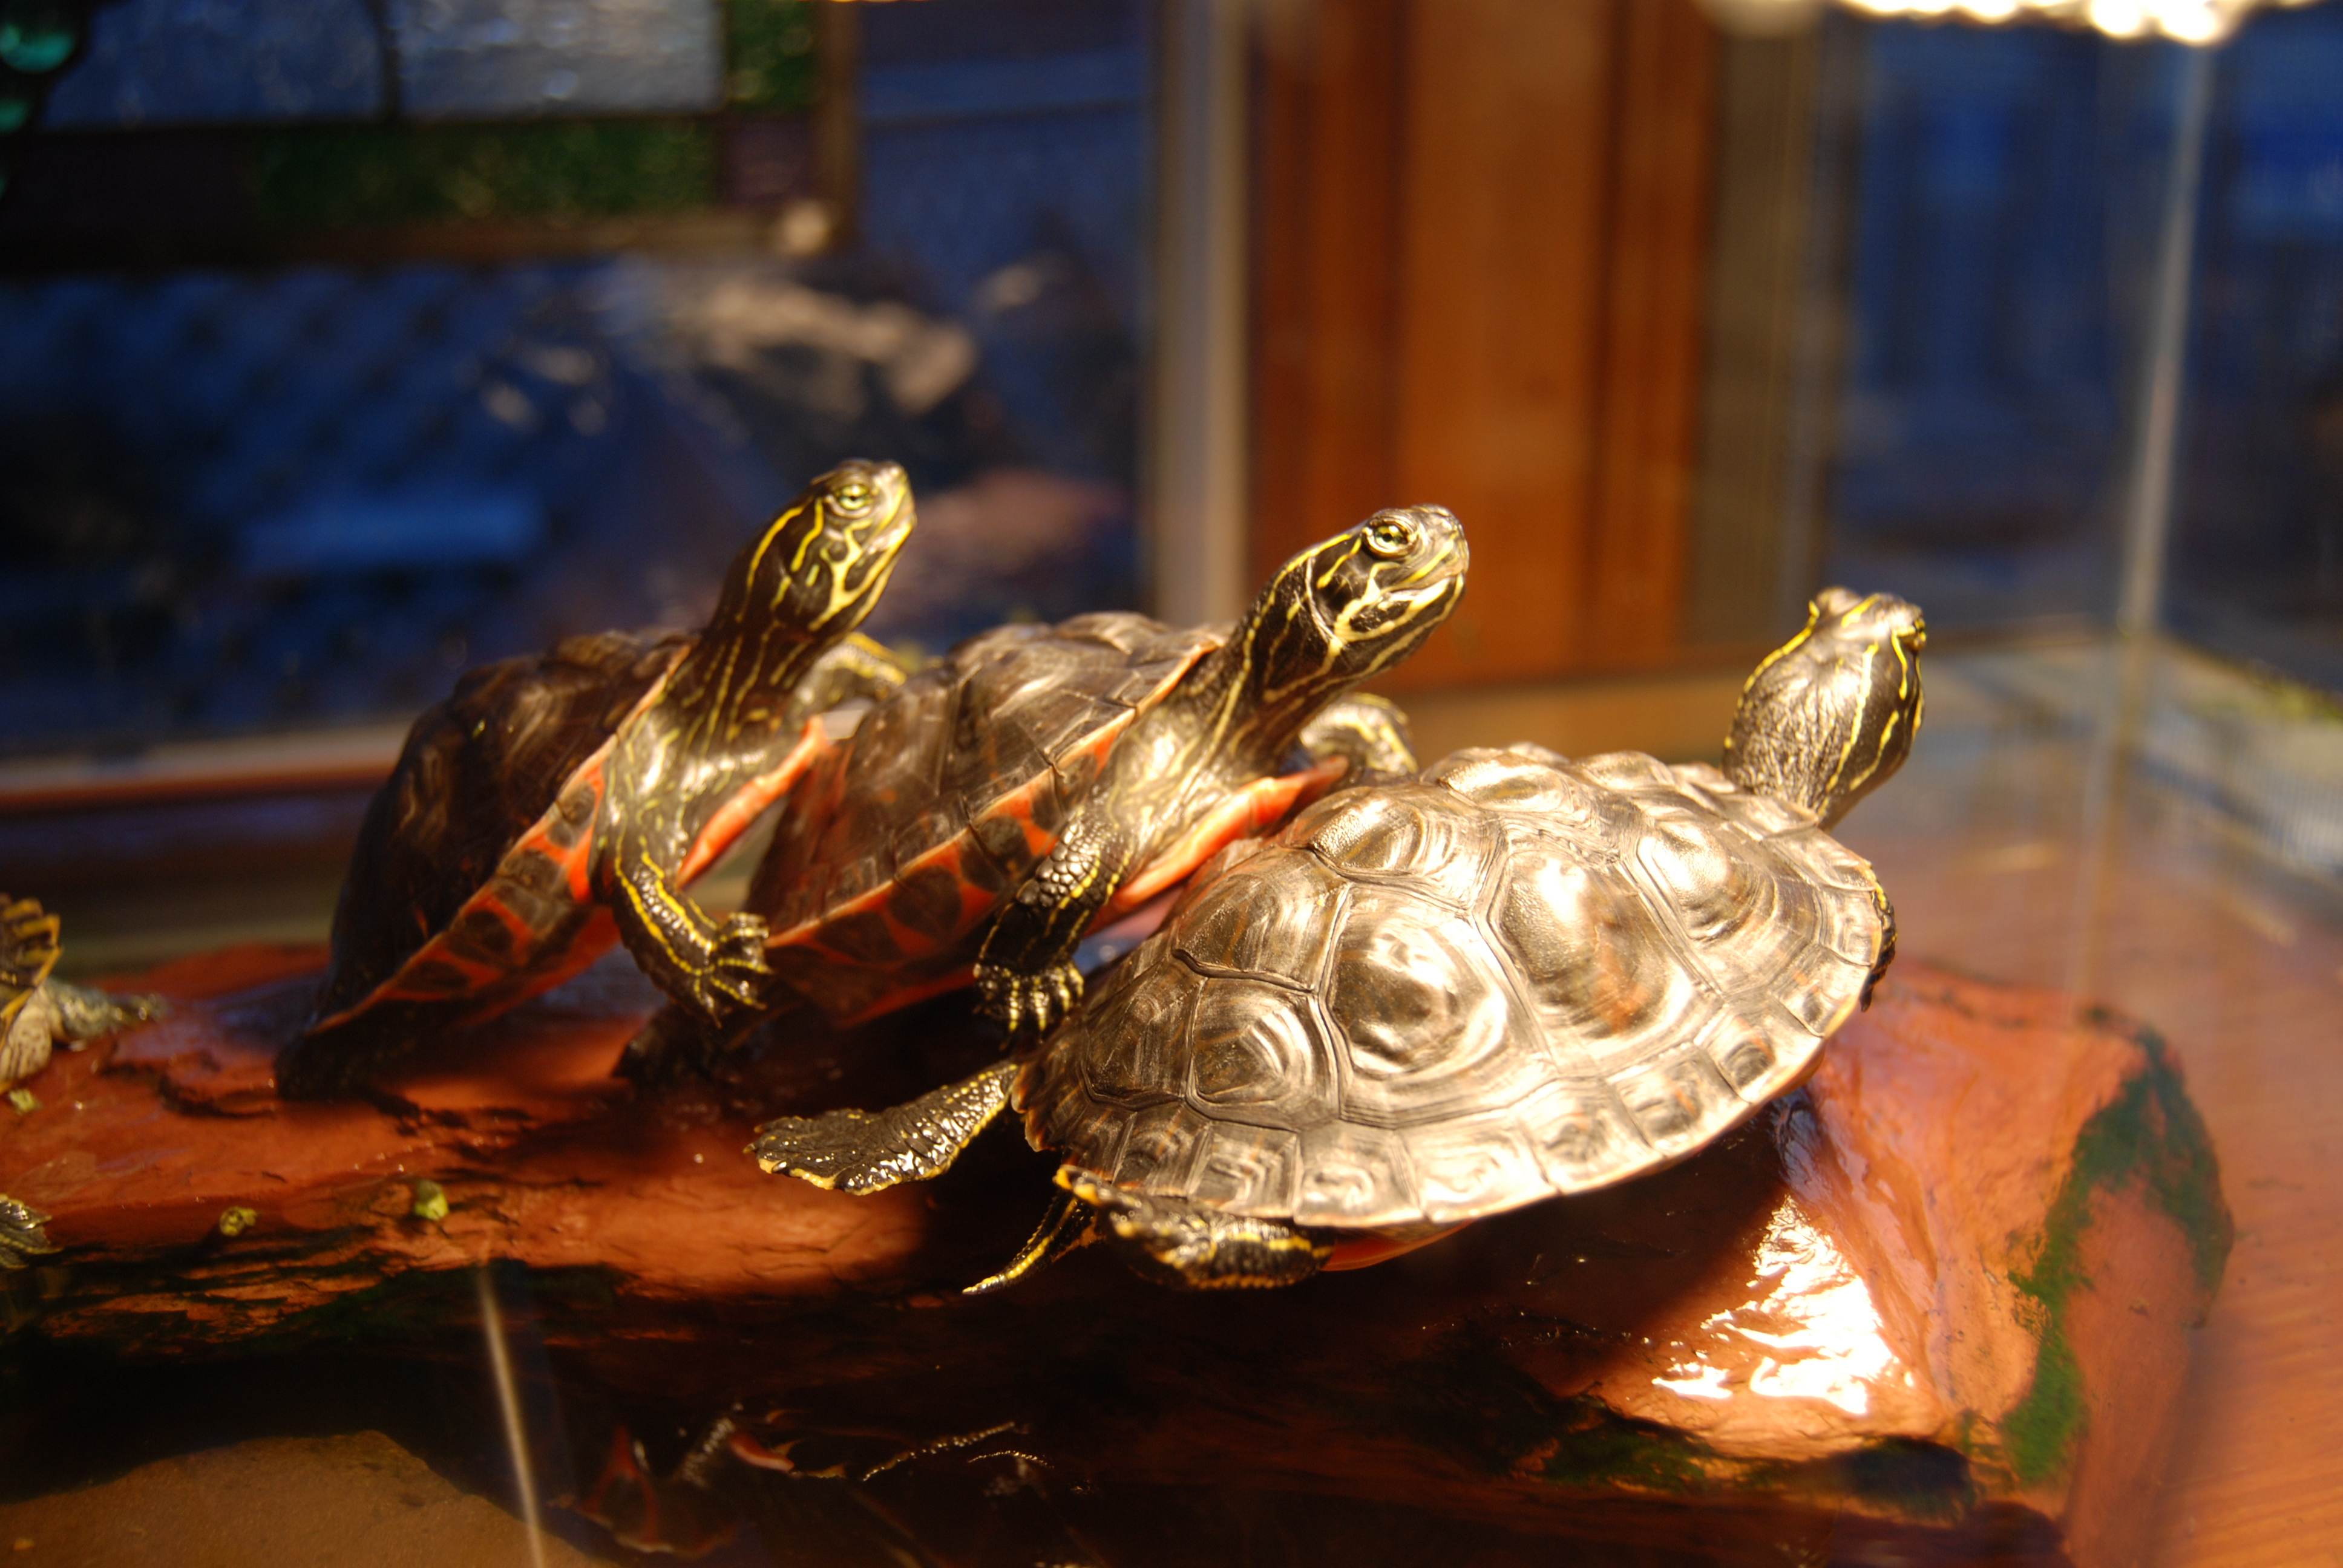 https://upload.wikimedia.org/wikipedia/commons/7/74/Basking_turtles.JPG